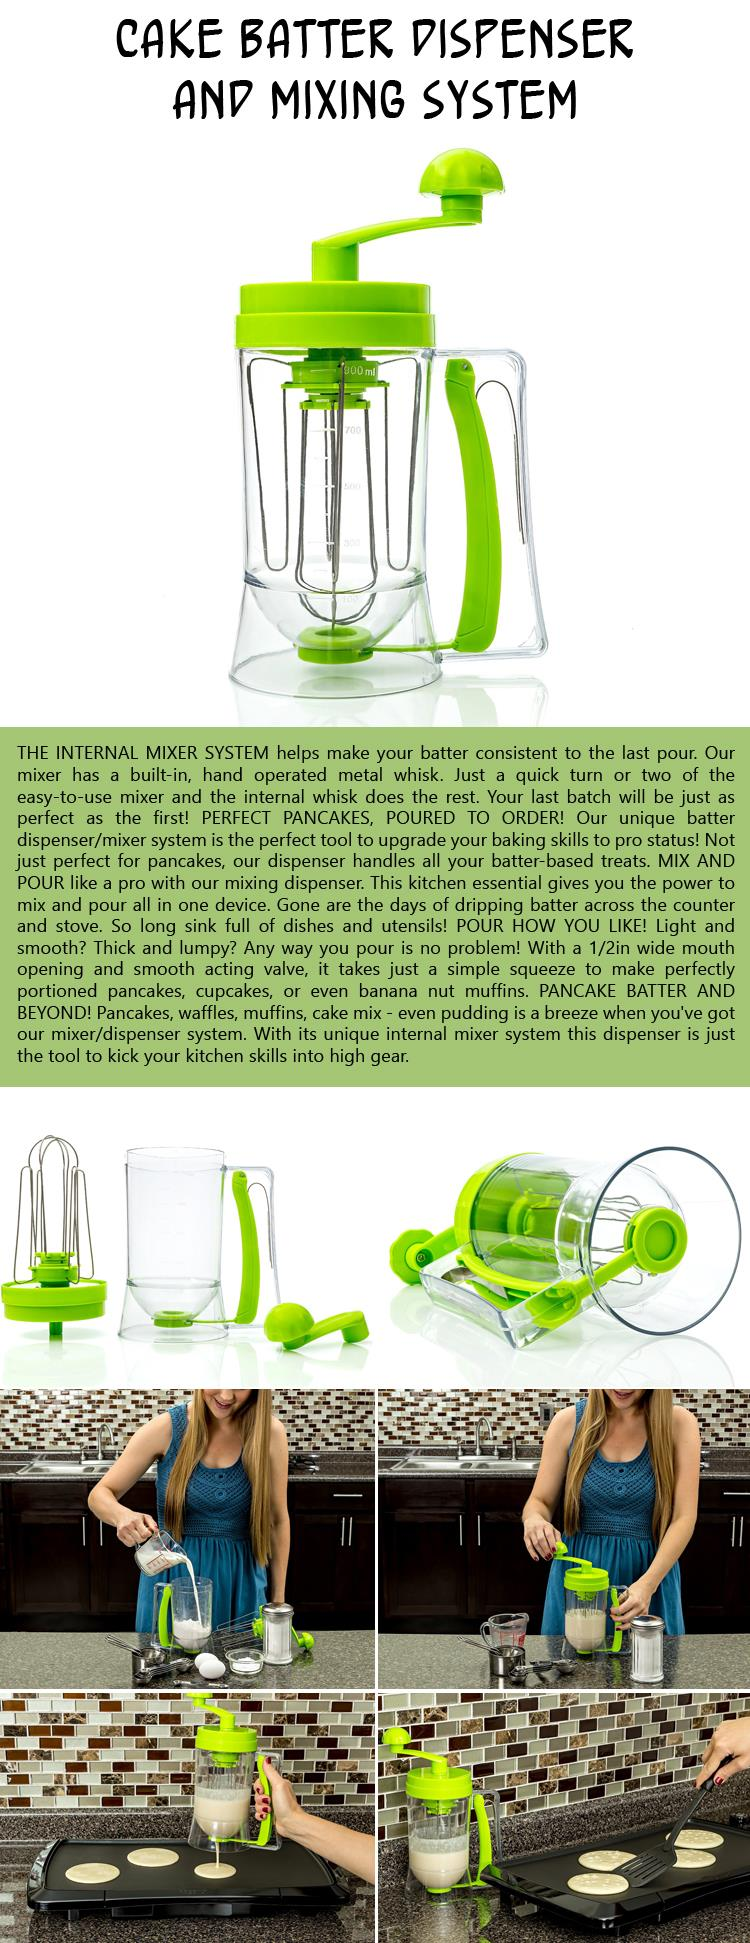 Cake Batter Dispenser and Mixing System